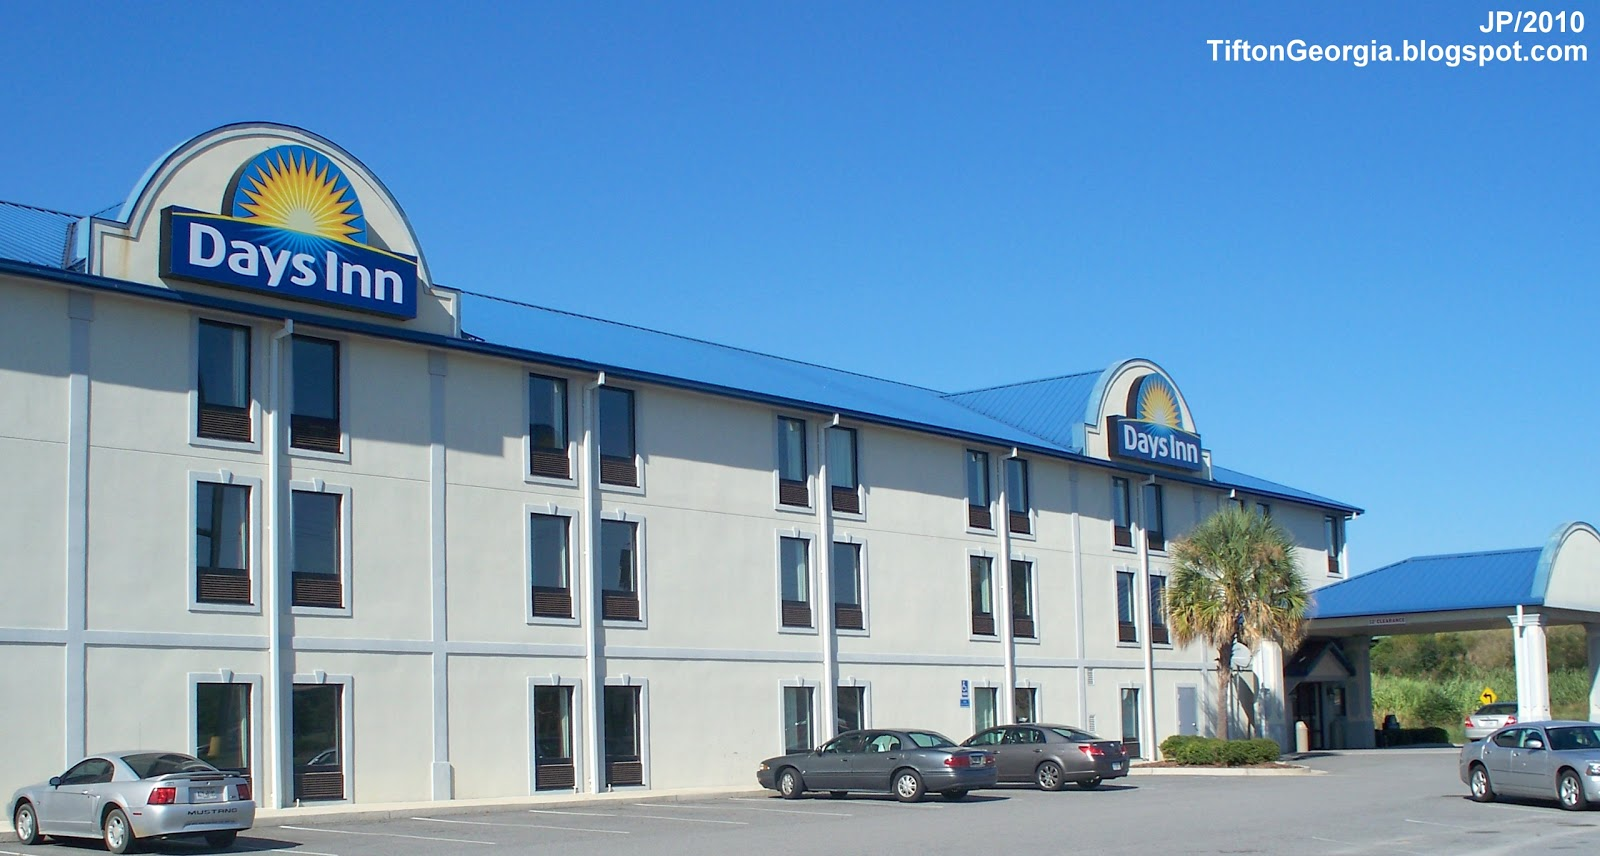 Days Inn Hotel Tifton Georgia Hwy 82 W Lodging Travel Rooms Tift County Ga